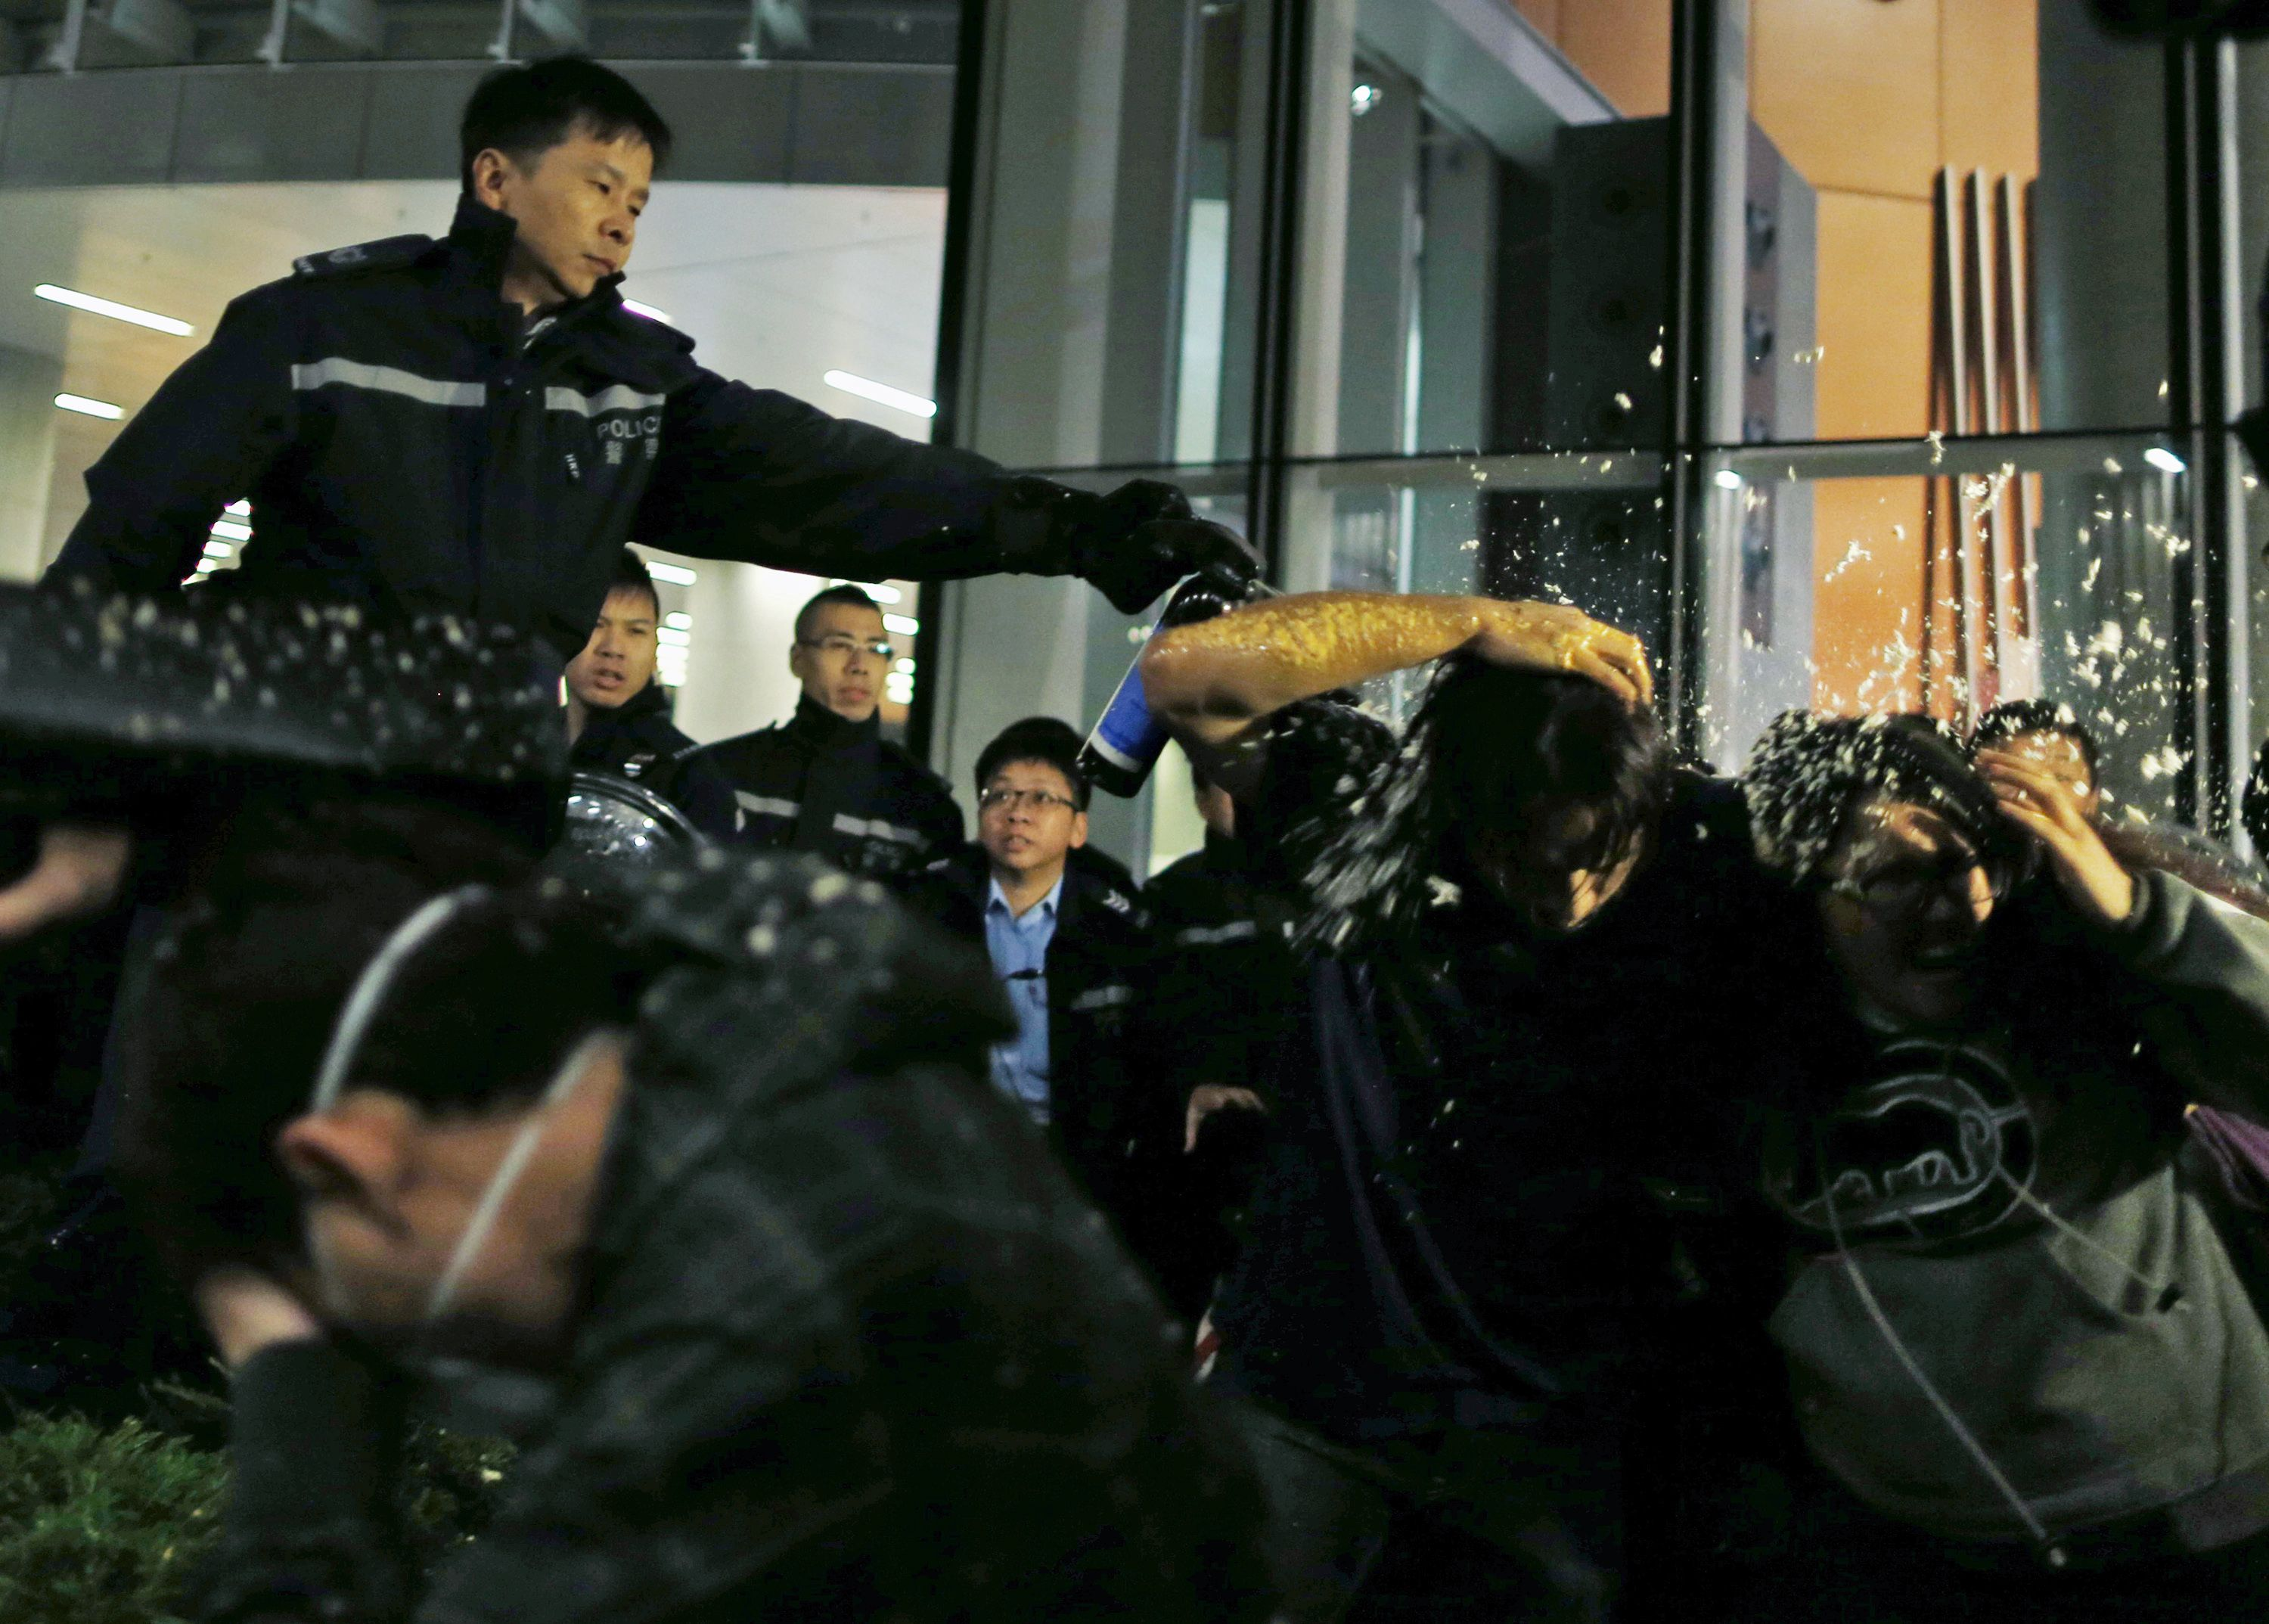 Hong Kong Protesters Break into Government Building as Tensions Flare Again